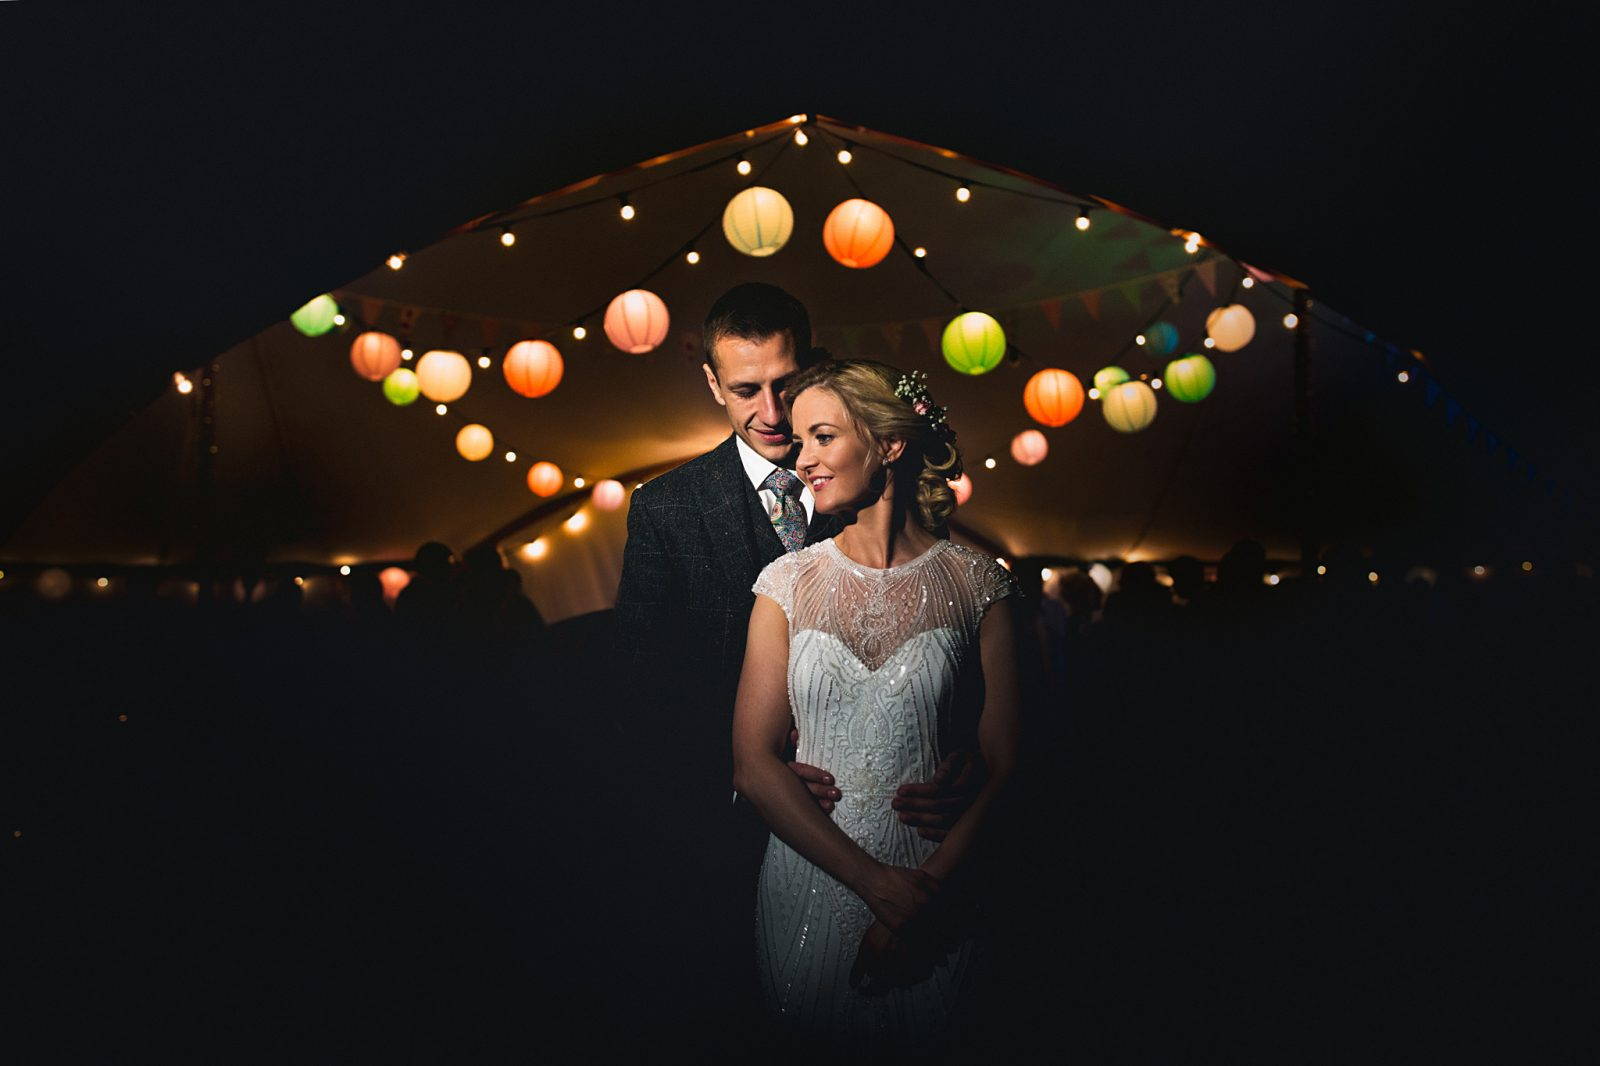 Rosa Clara beaded wedding dress paper lanterns wedding night Low Friarside Farm County Durham Andy Hudson Photography